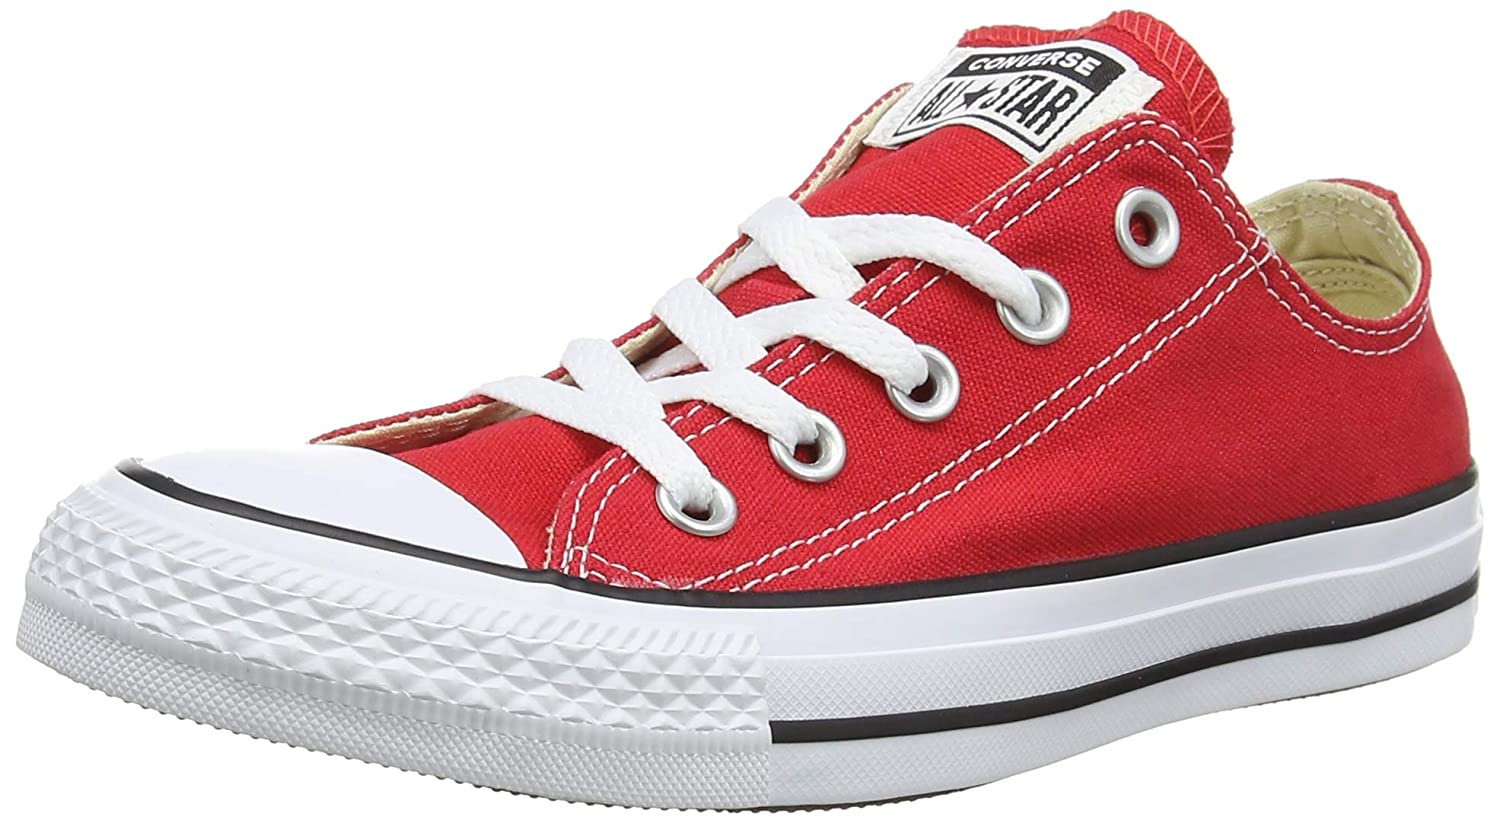 Converse Unisex-Erwachsene Chuck Taylor All Star Rubber Sneakers Rot (ROT/ROT/ROT)